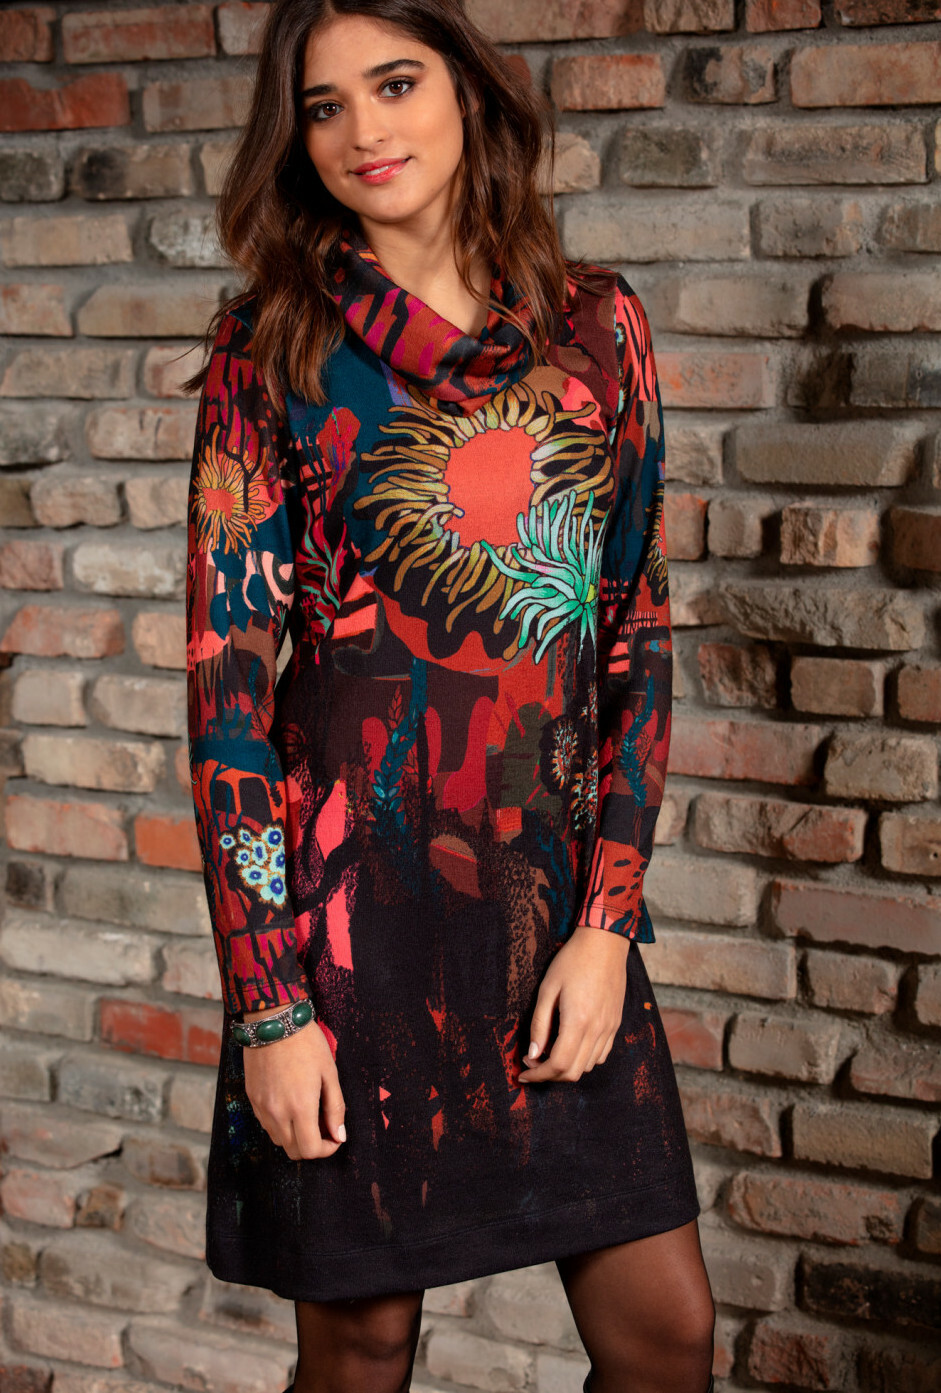 Maloka: Sedona Rock Abstract Art Sweater Dress (With Detachable Cowl Neck!) MK_ESMEE_N1